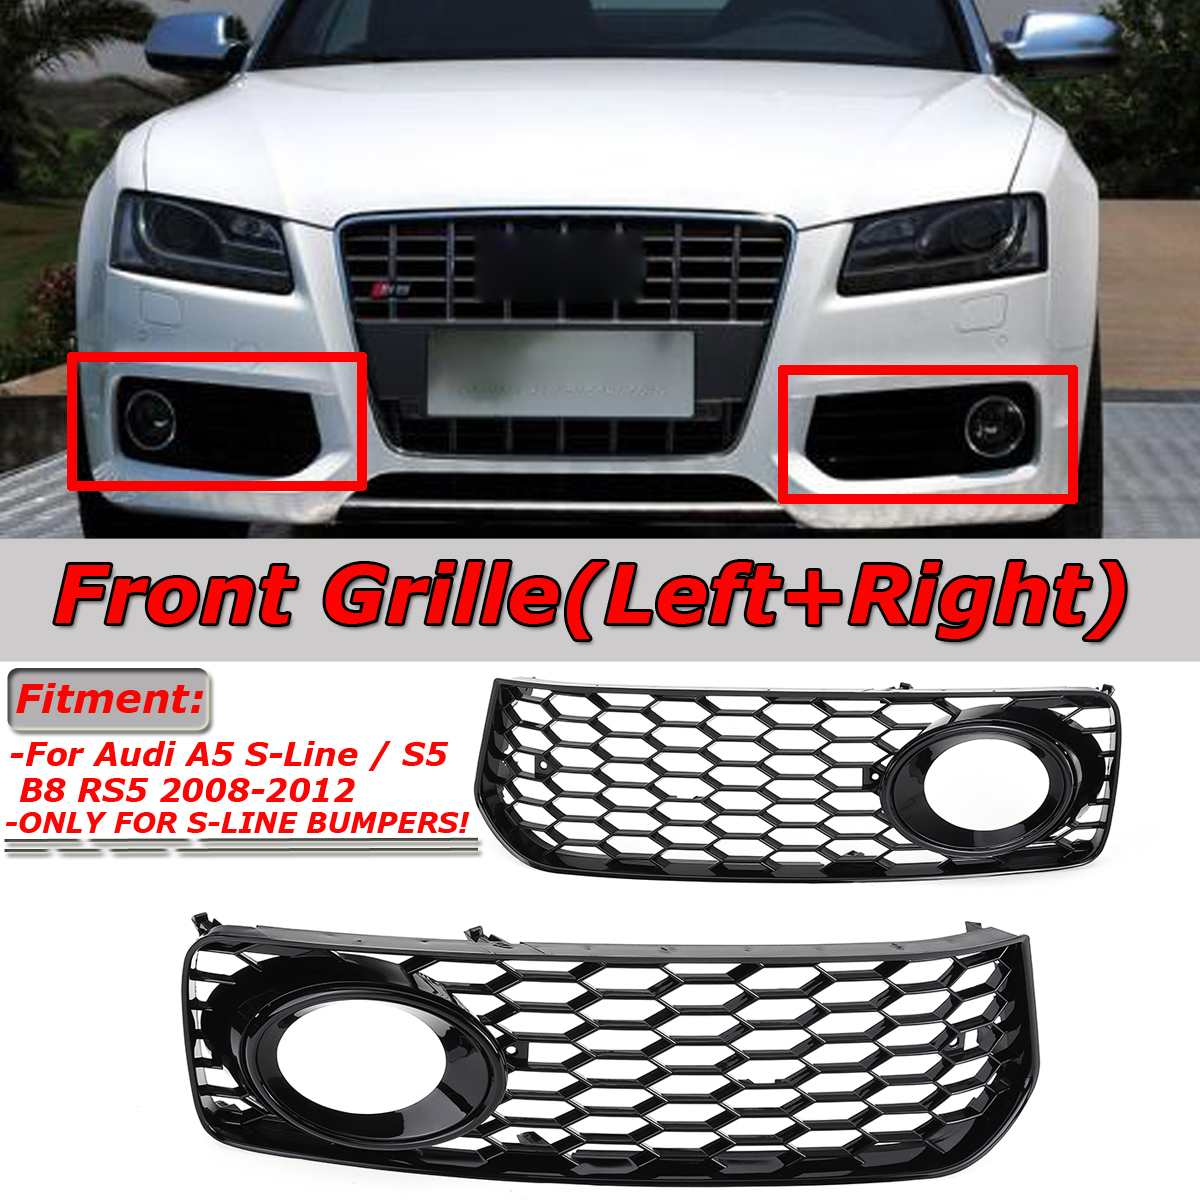 2pcs Car Fog Light Lamp Cover Honeycomb Mesh Hex Front Grille <font><b>Grill</b></font> For <font><b>Audi</b></font> <font><b>A5</b></font> S-Line/S5 B8 RS5 2008-2012 Black / Chrome Silver image